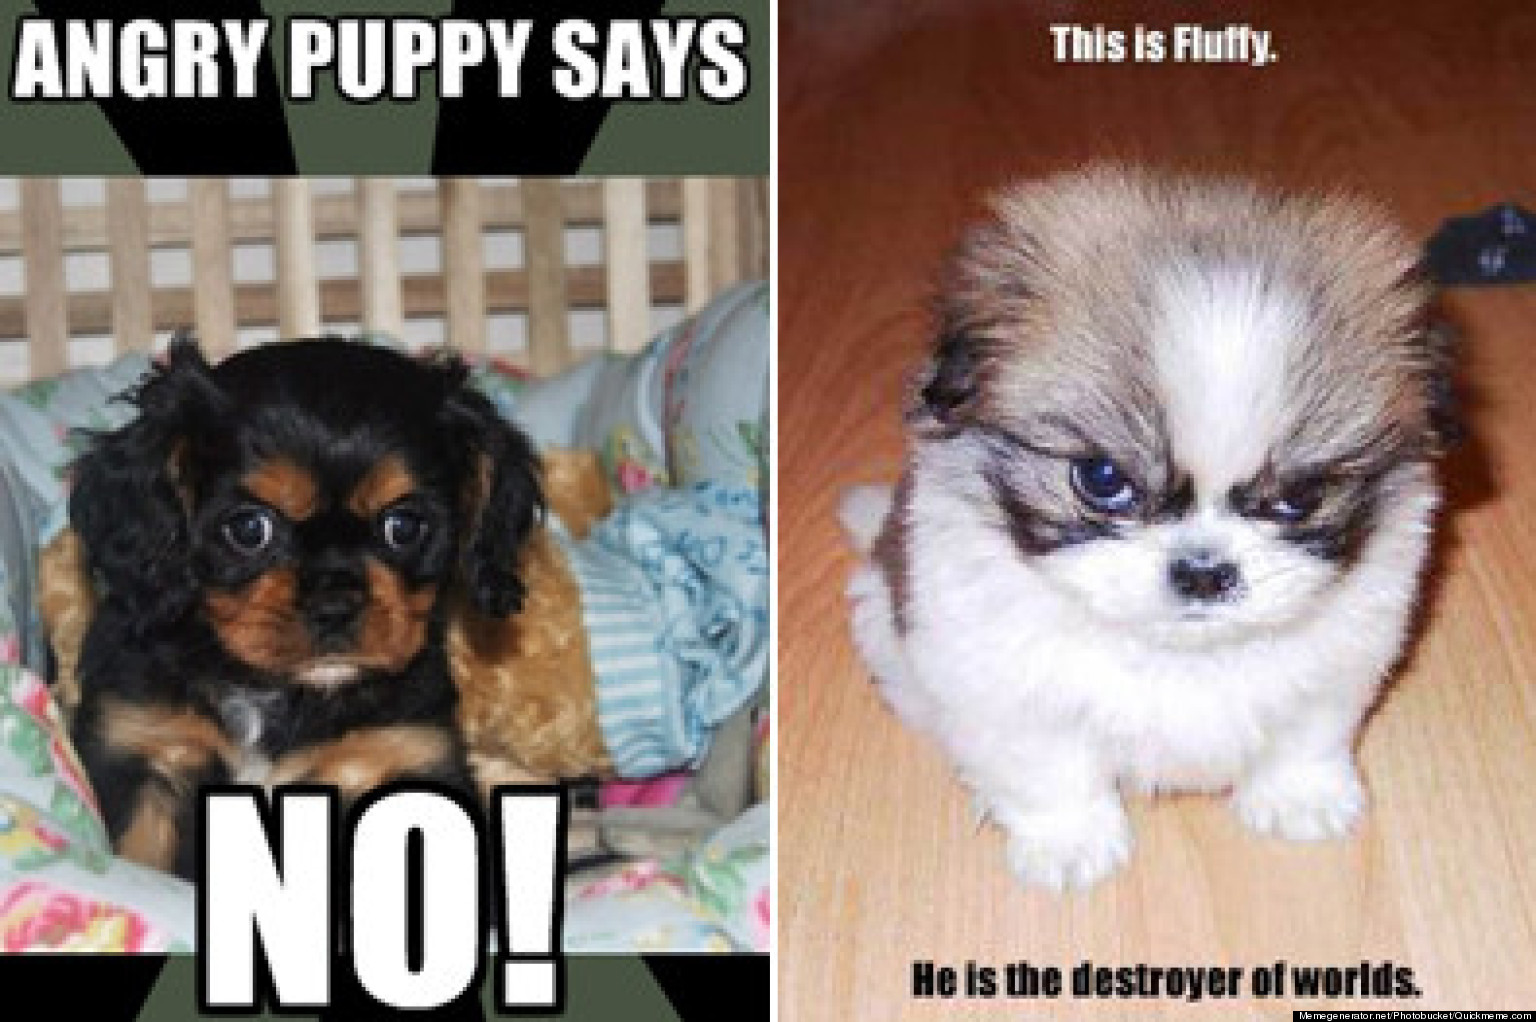 o ANGRY PUPPY MEME facebook photos cutest angry puppy meme contest huffpost